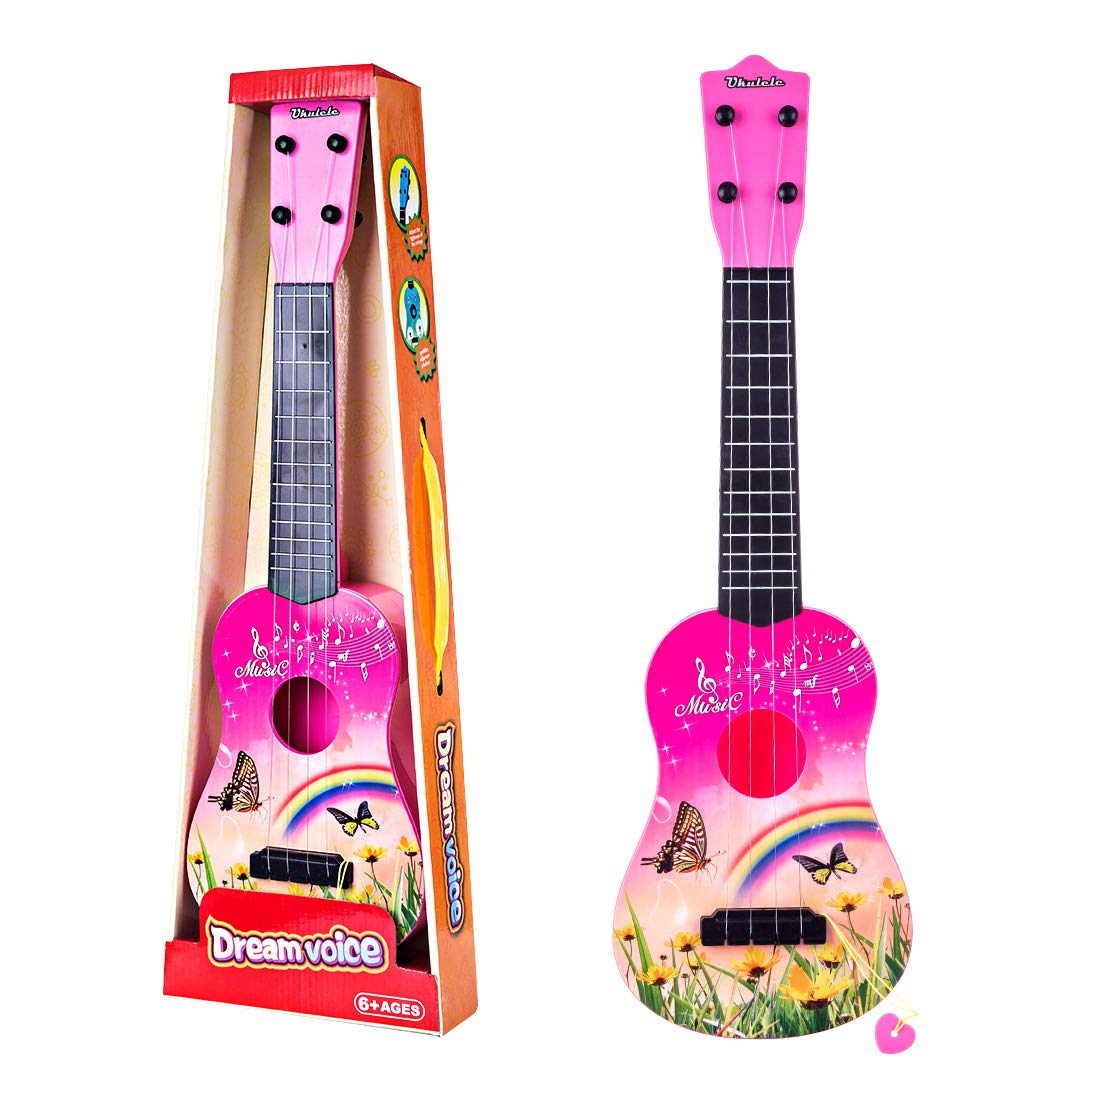 RuiyiF Toy Guitar for Toddlers Girls Boys, 4 String Acoustic Guitar with Pick for Beginners Kids/ Toddler Guitar Toy for Kids Ages 3-5 (Pink) by RuiyiF